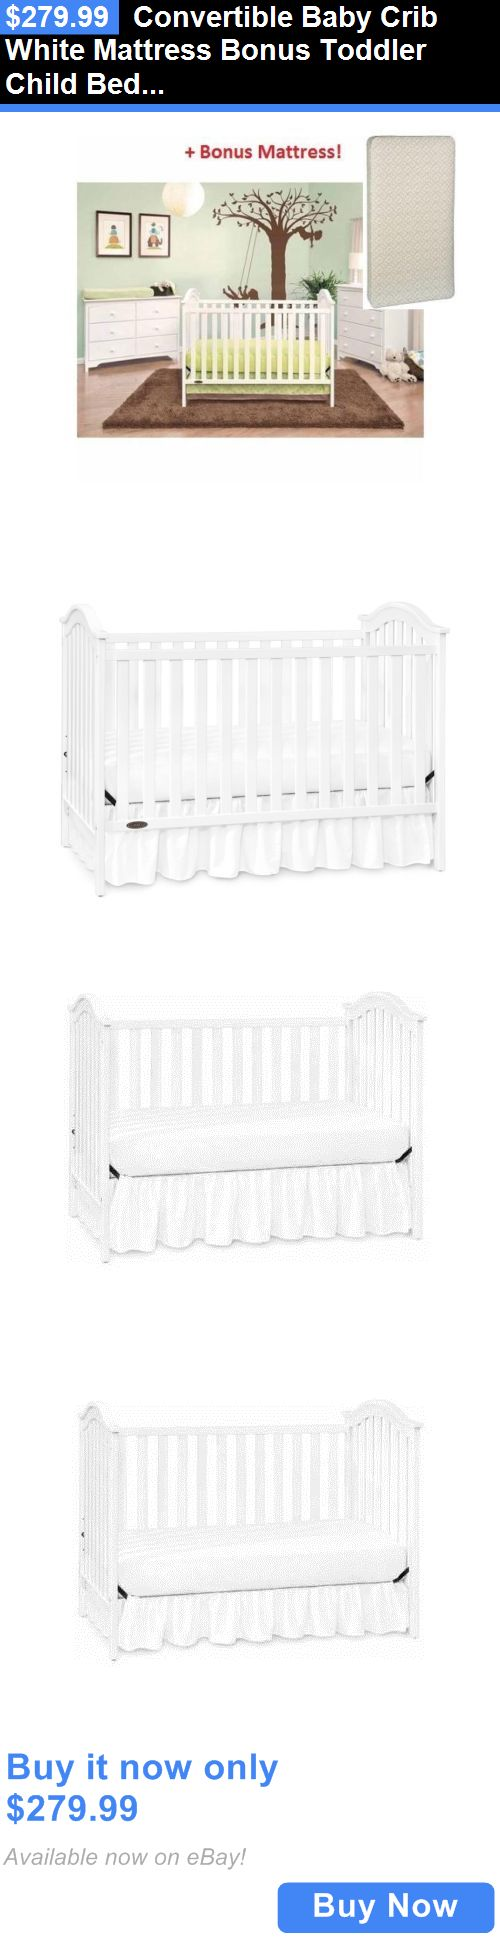 Baby crib youth bed - Baby Nursery Convertible Baby Crib White Mattress Bonus Toddler Child Bed Nursery Furniture Buy It